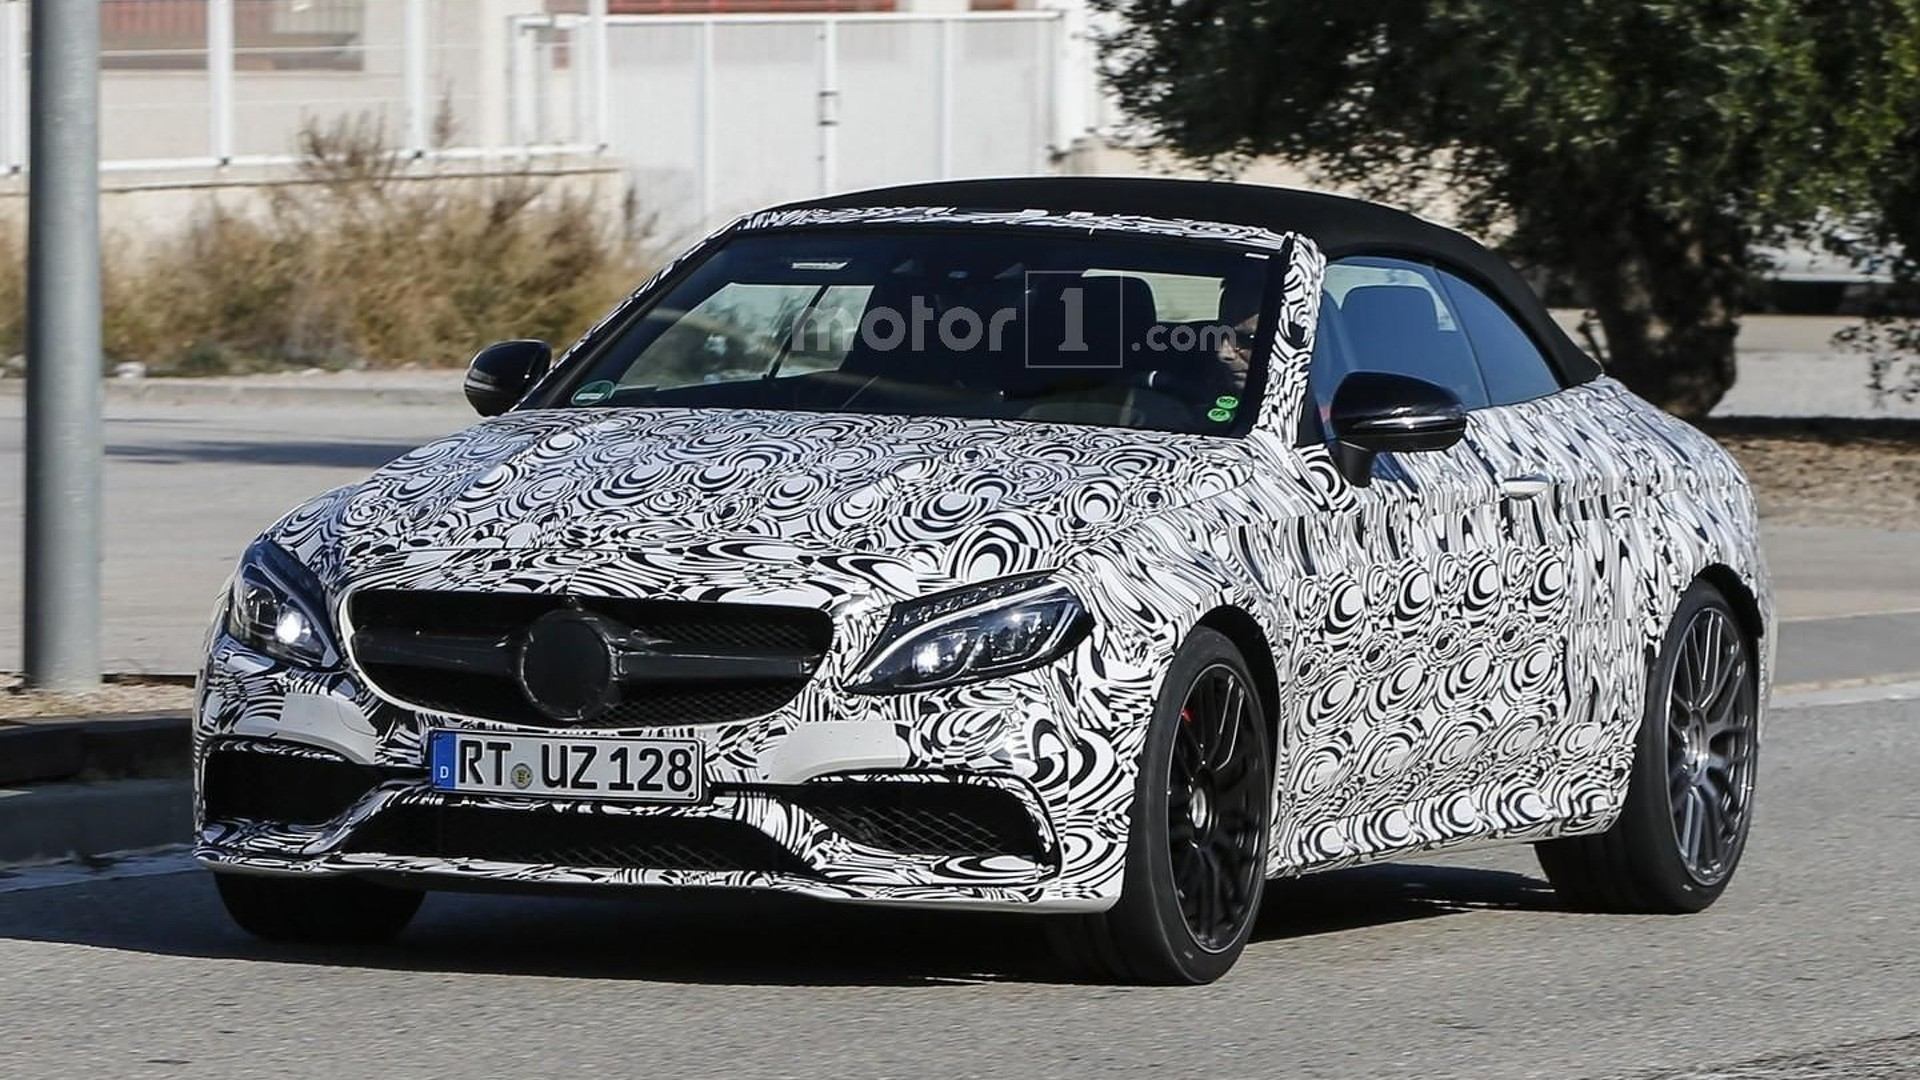 2017 Mercedes-AMG C63 Cabriolet looks lean and mean